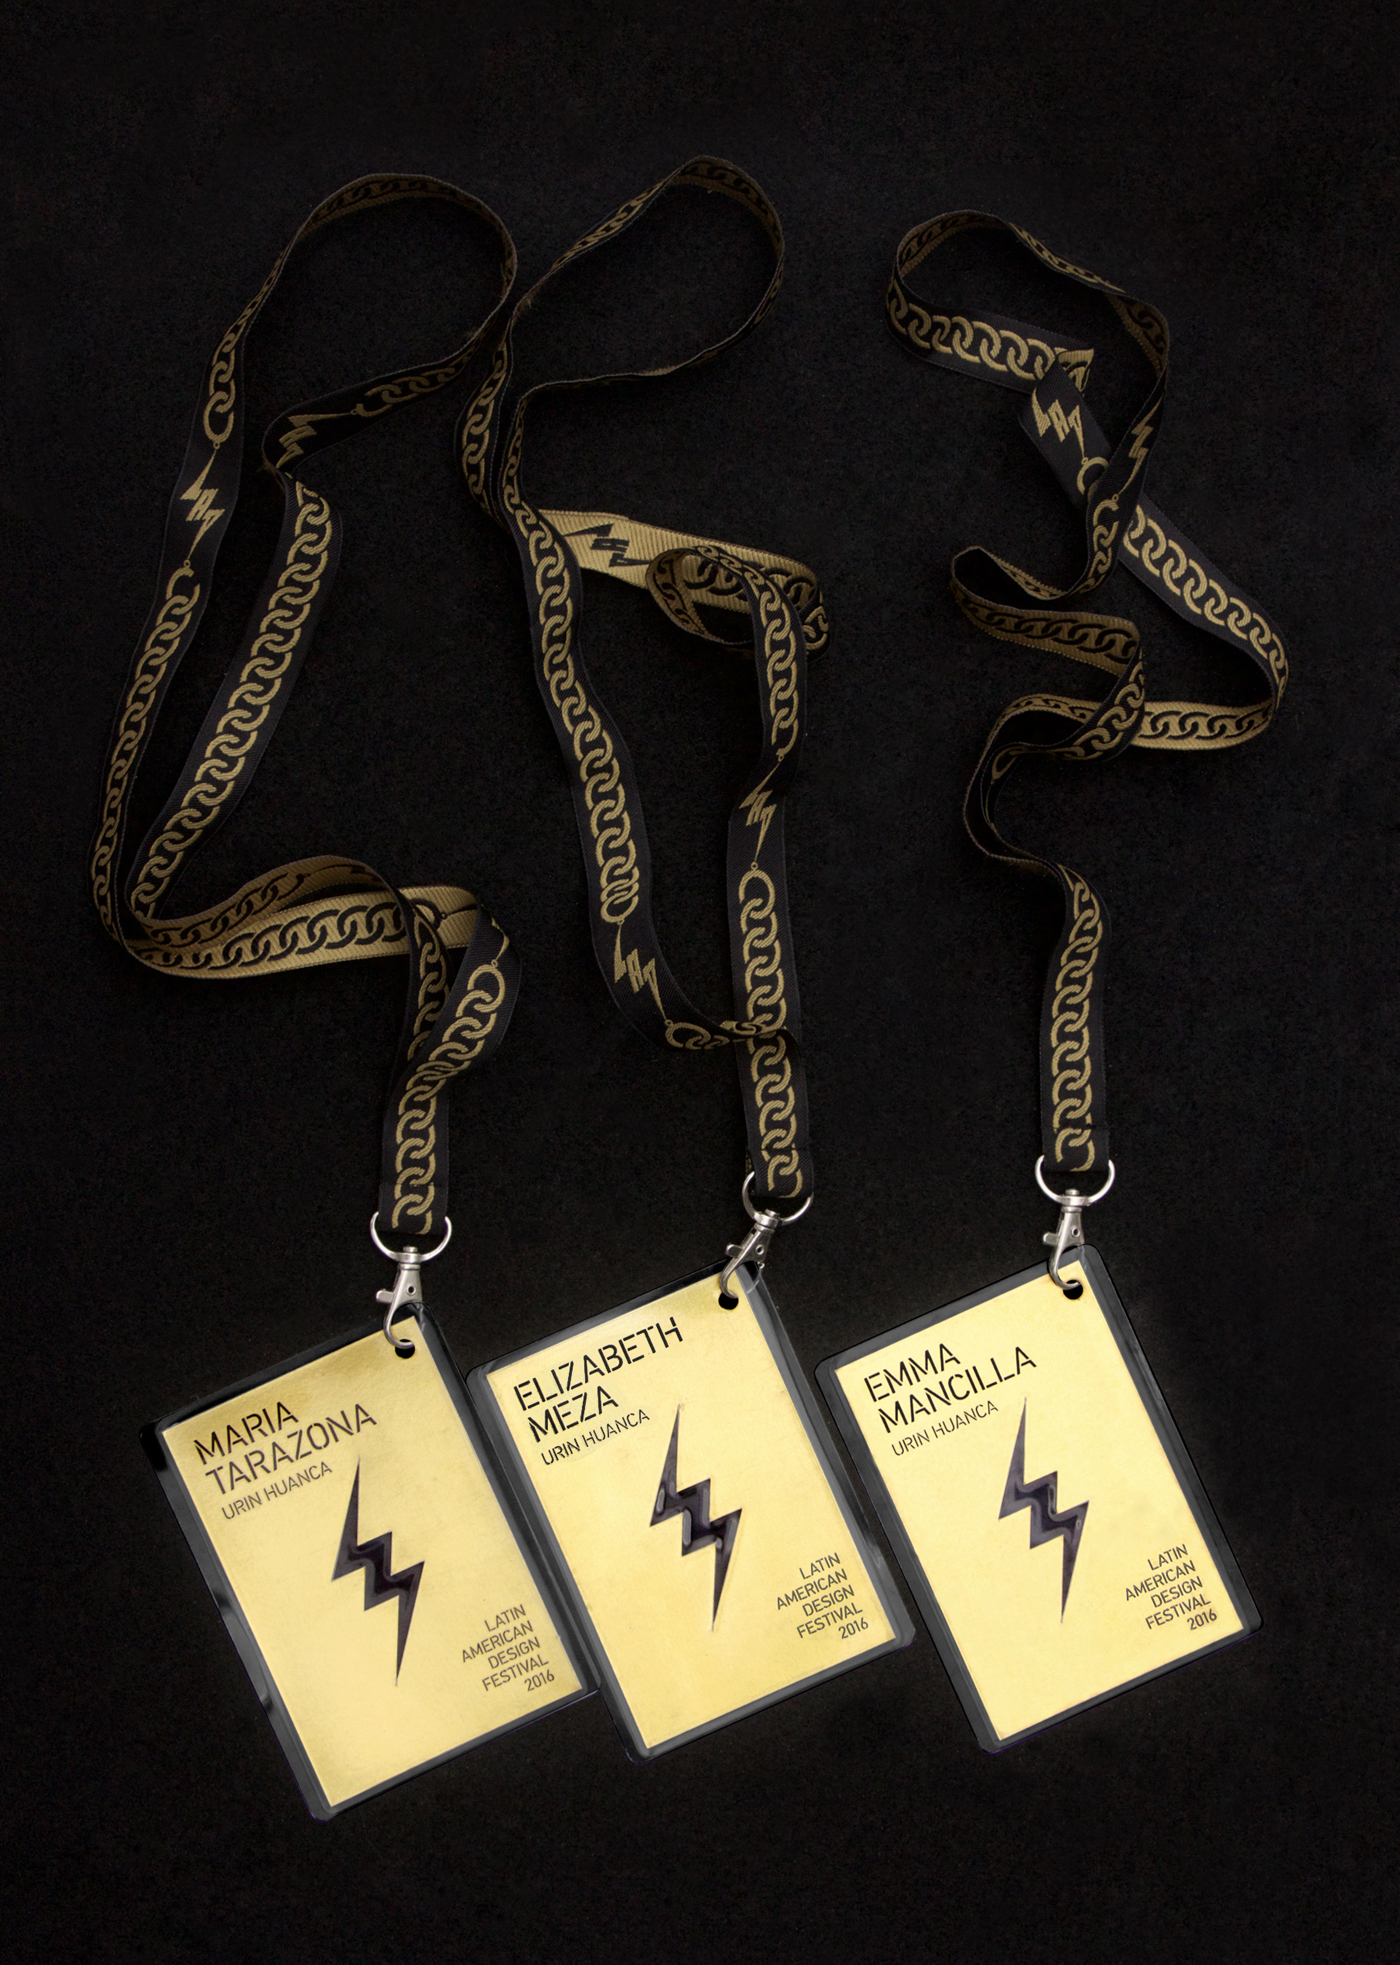 Brand identity and lanyards for Latin American Design Festival 2016 by IS Creative Studio